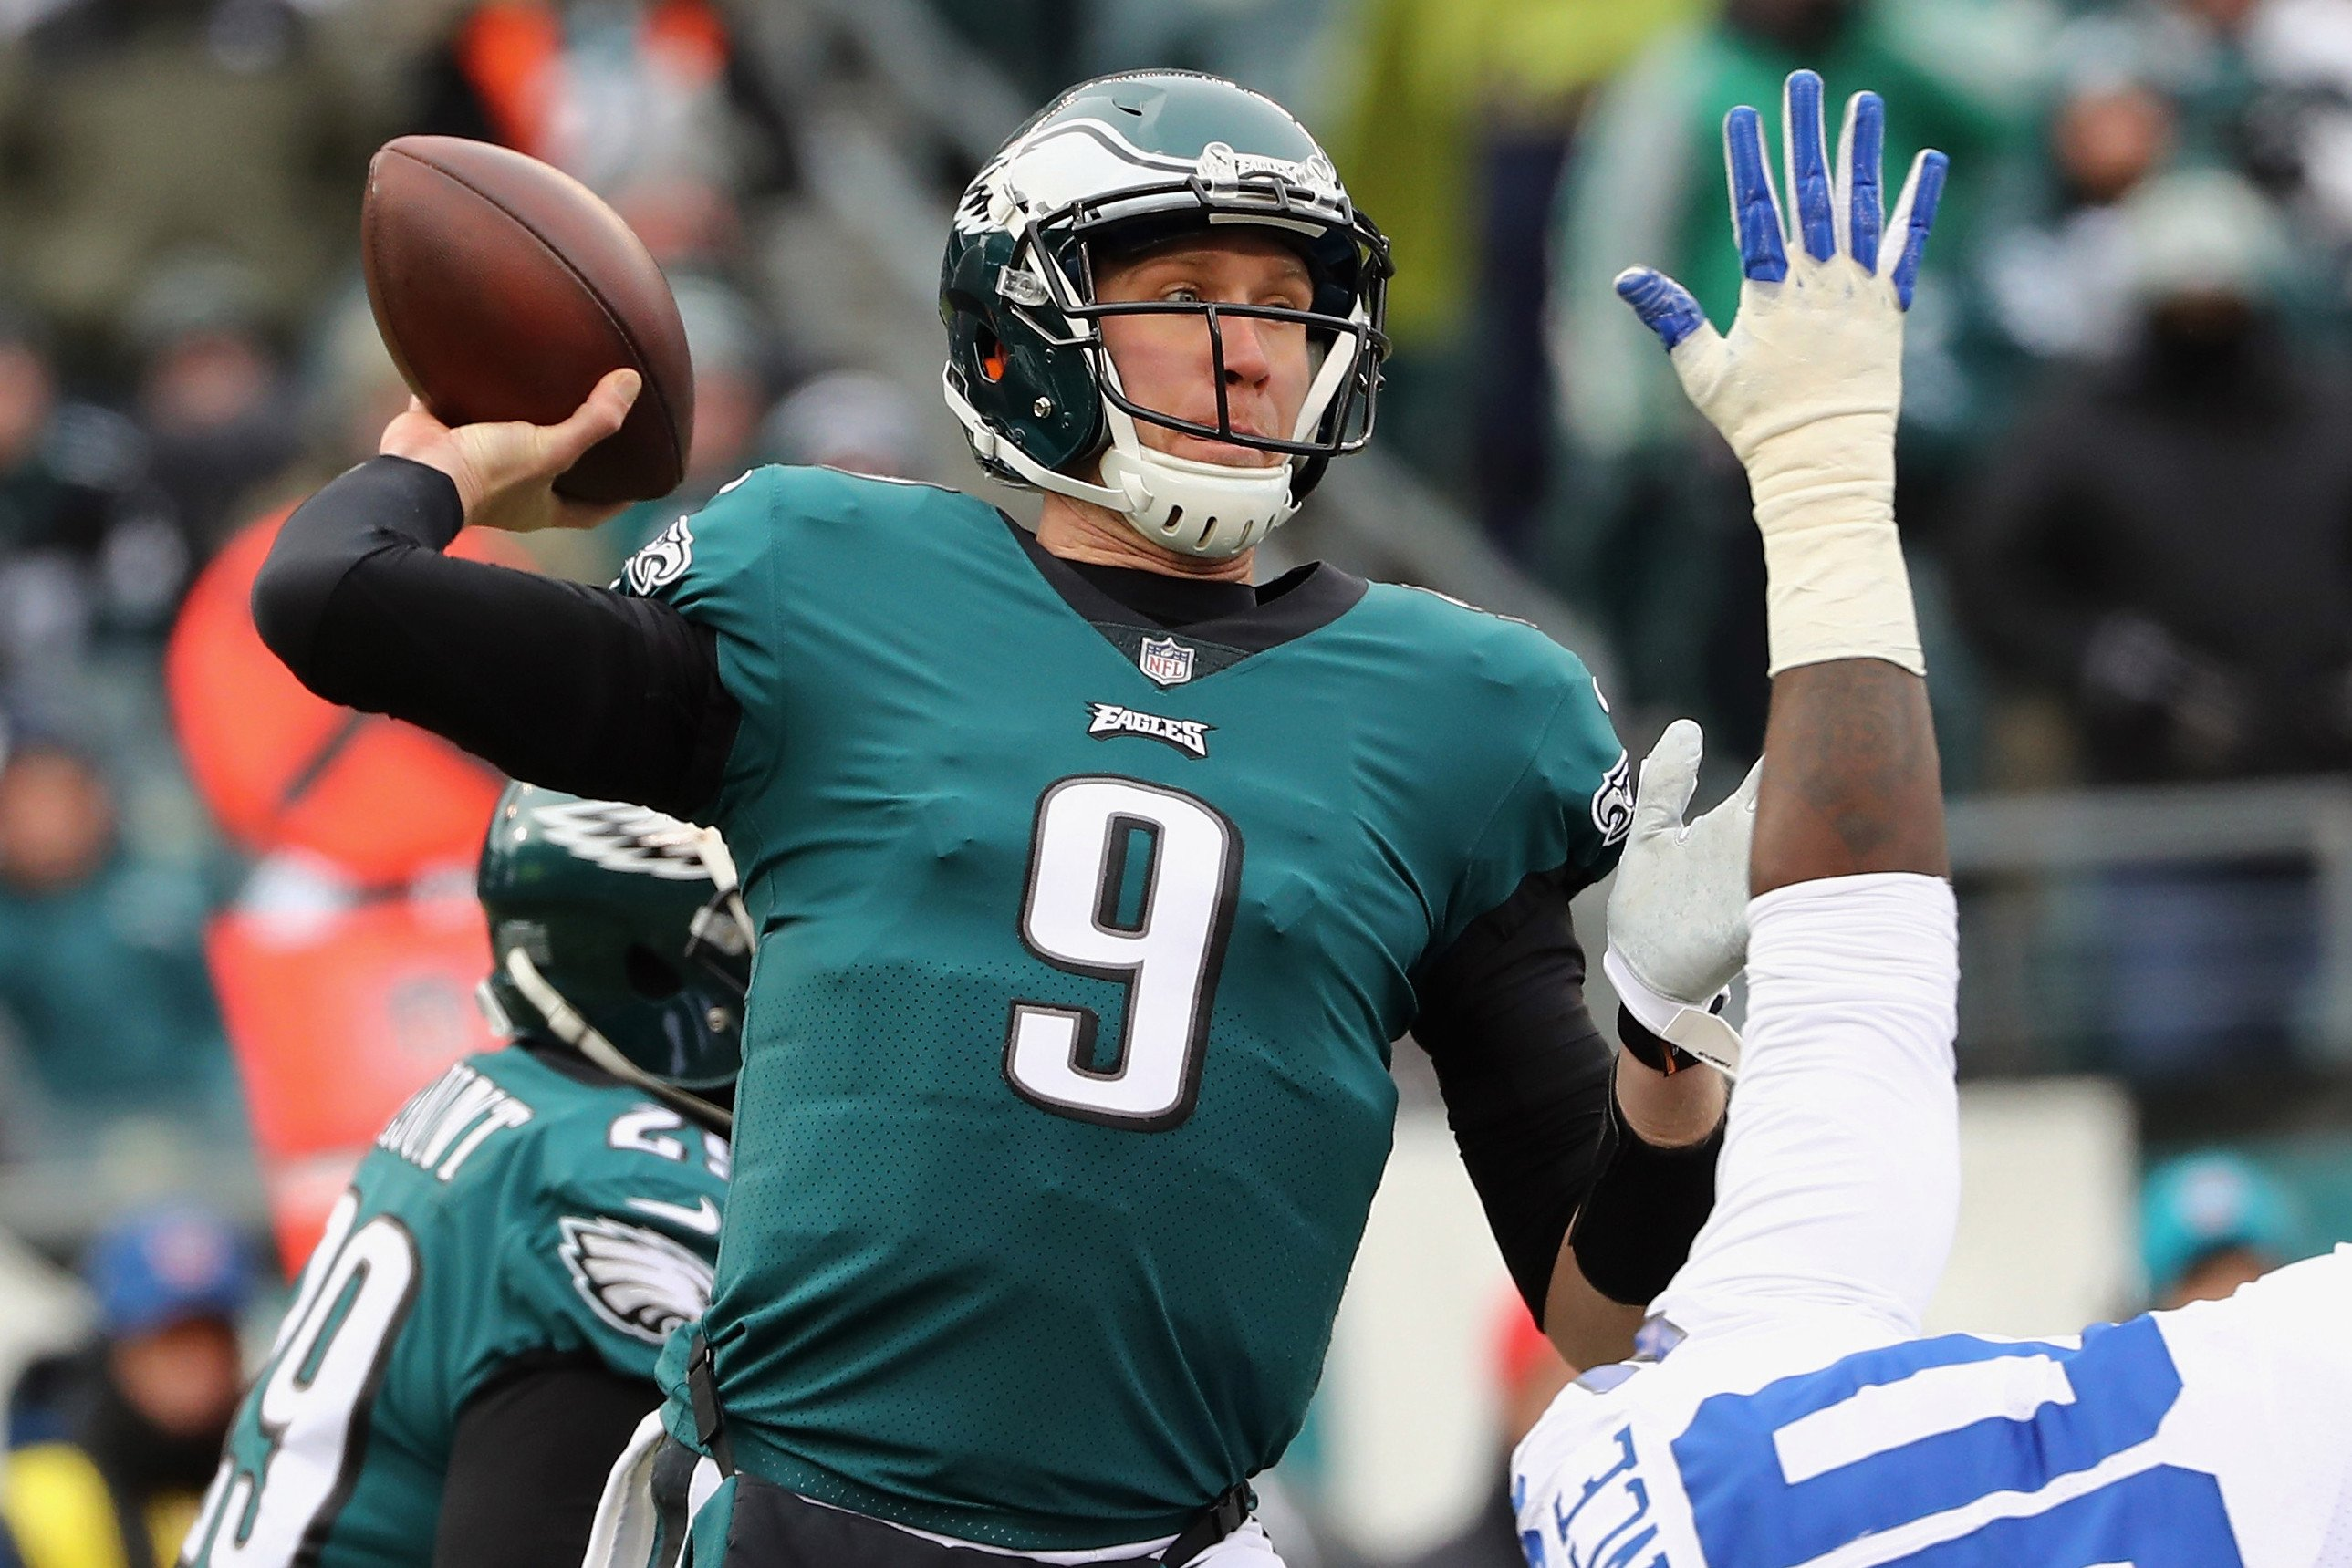 Nick Foles has second chance to be a Rocky-like Eagles hero